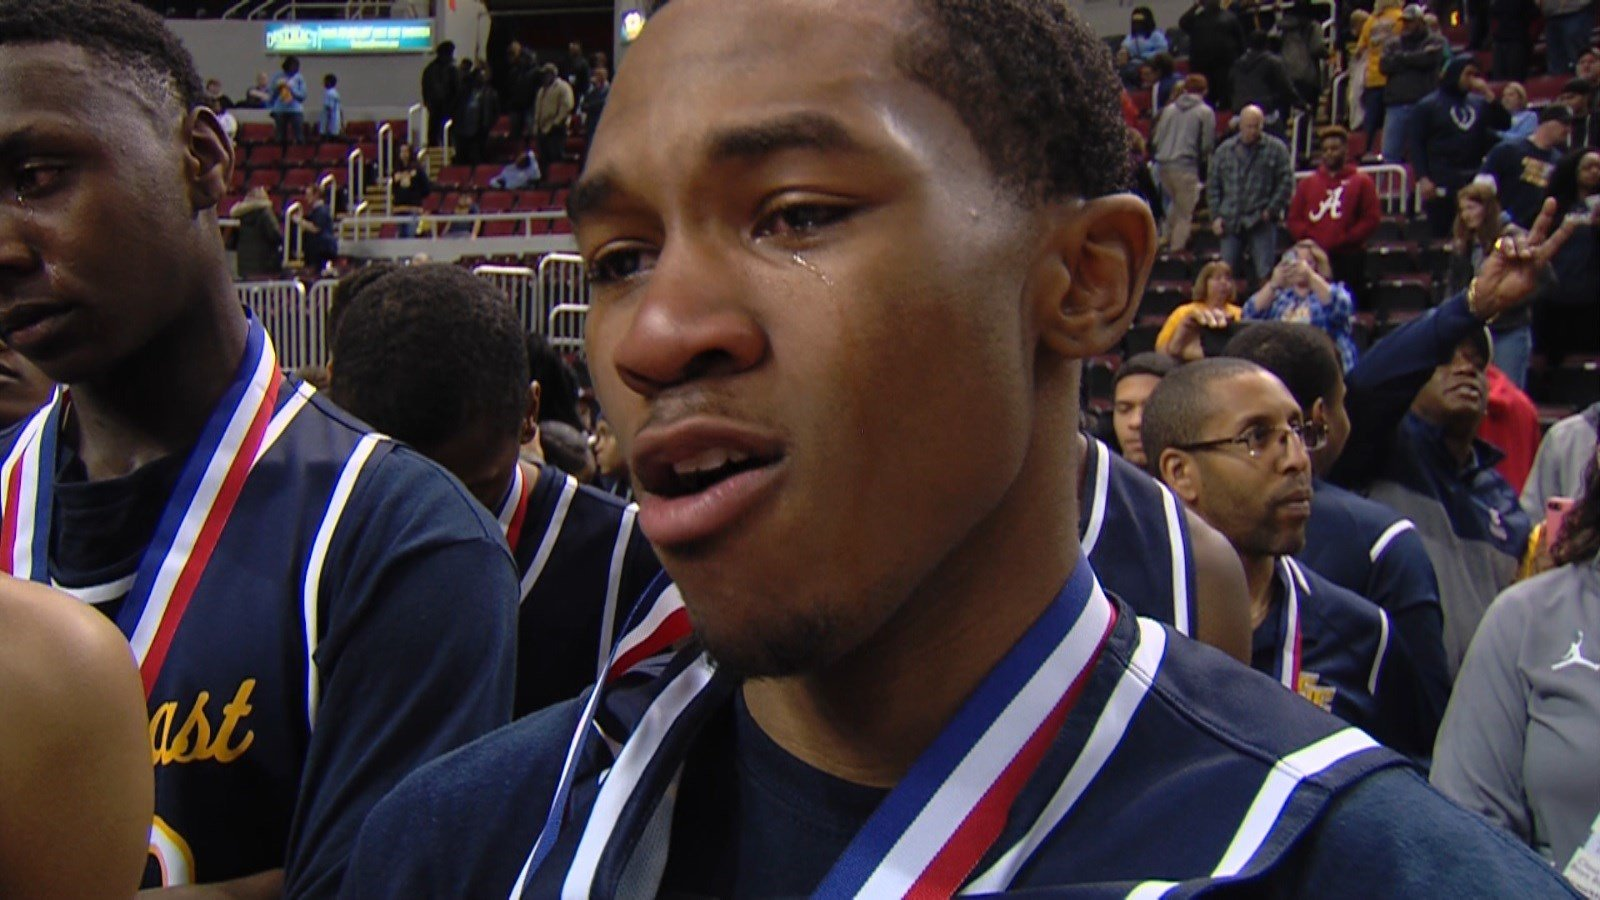 Southeast senior Kobe Medley posted 10 points and the Spartans came away with a second place trophy in the 3A state championship game against Morgan Park on Saturday in Peoria.